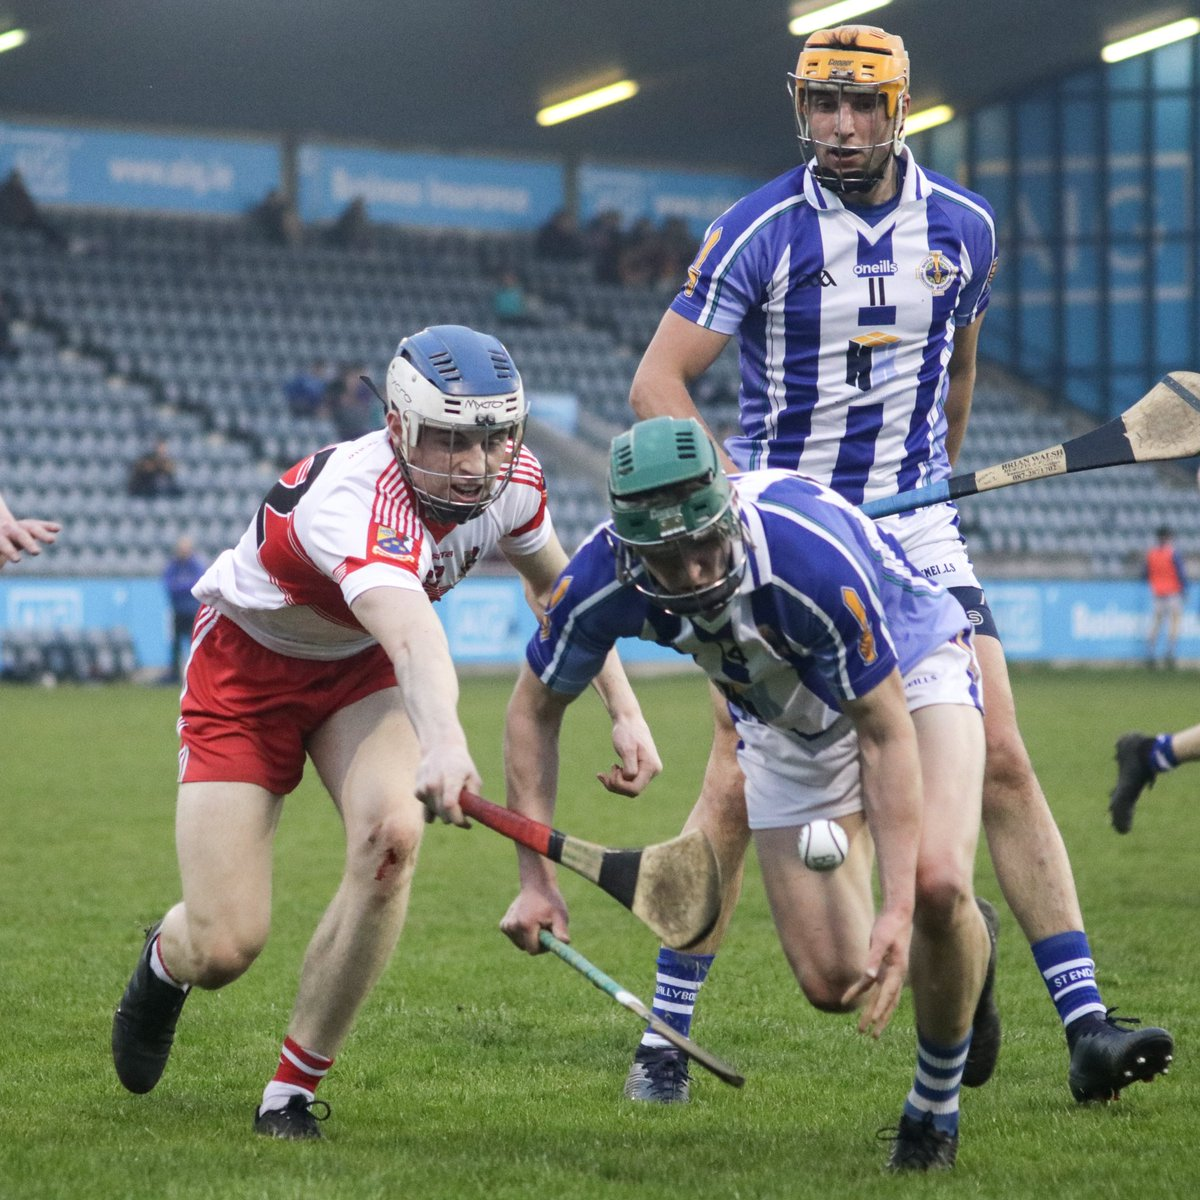 test Twitter Media - Its a 12 point lead for @Bodengaa at the break against @WColmcille in the Dublin SHC A 2nd round!  Watch the 2nd half LIVE with DubsTV: https://t.co/uMLxKKAsg1 https://t.co/x6sG9IBVGx